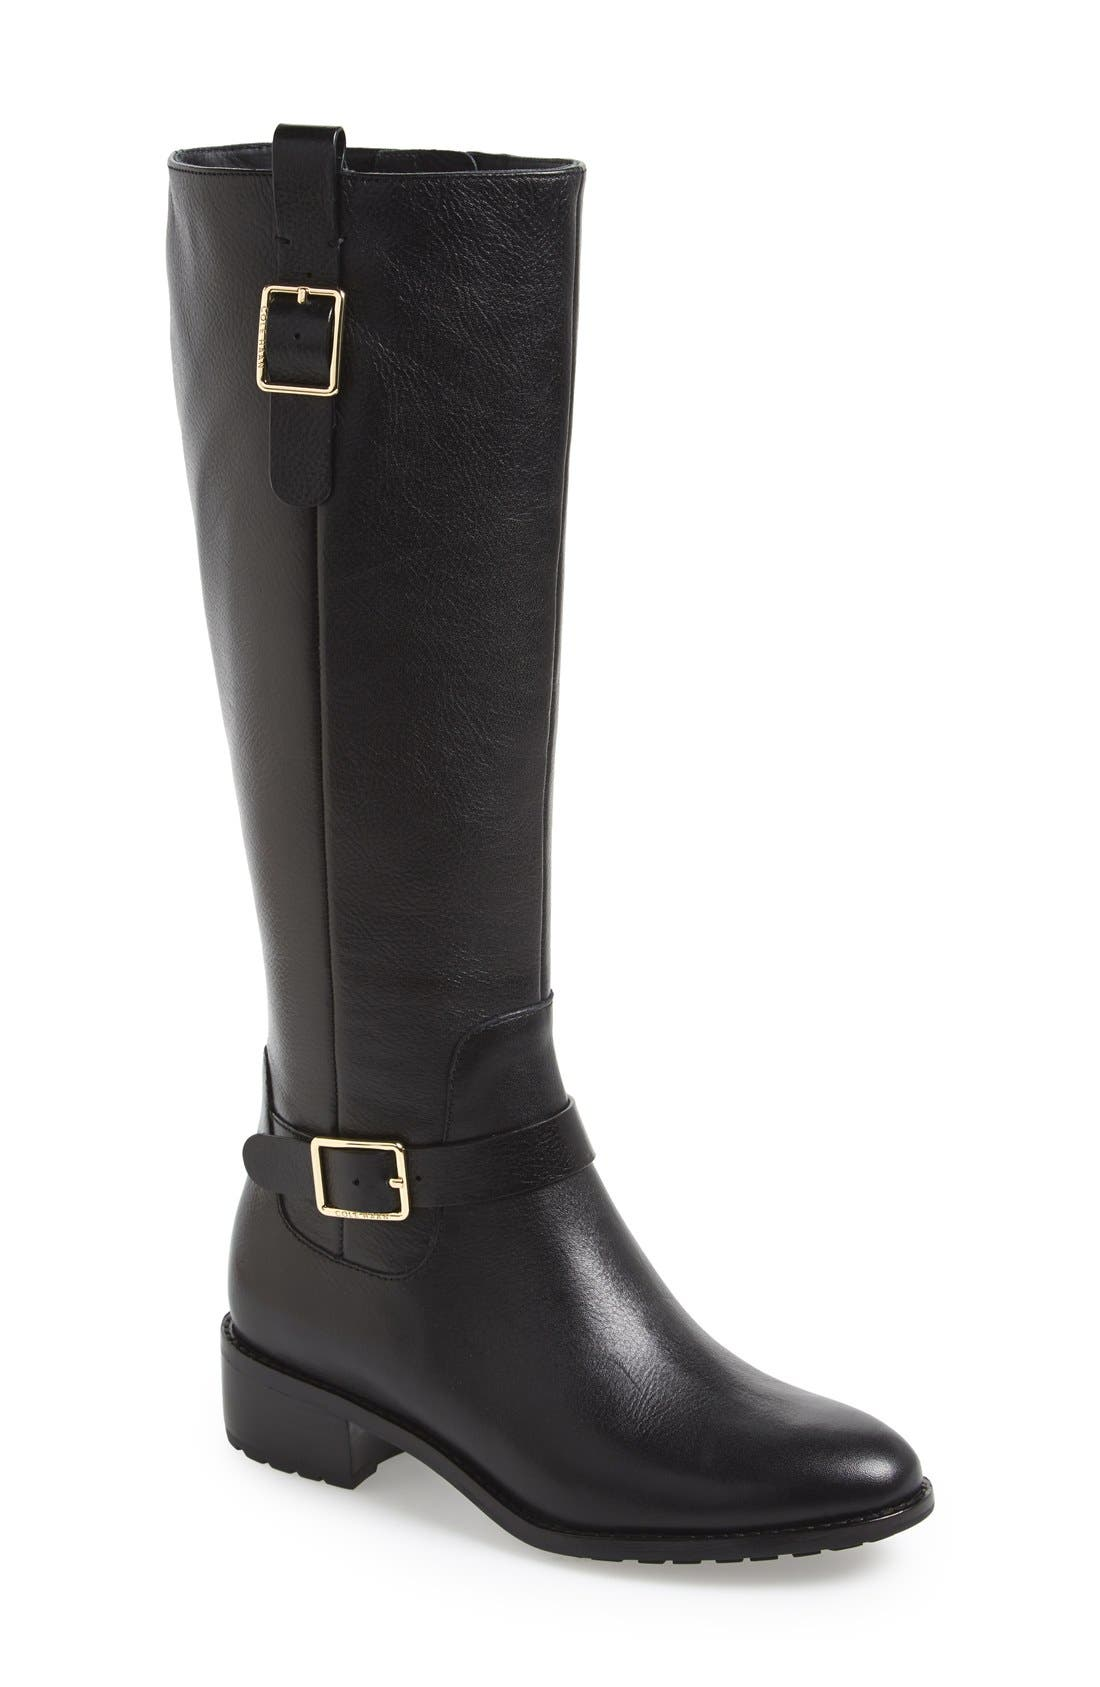 Alternate Image 1 Selected - Cole Haan 'Kenmare' Riding Boot (Women)